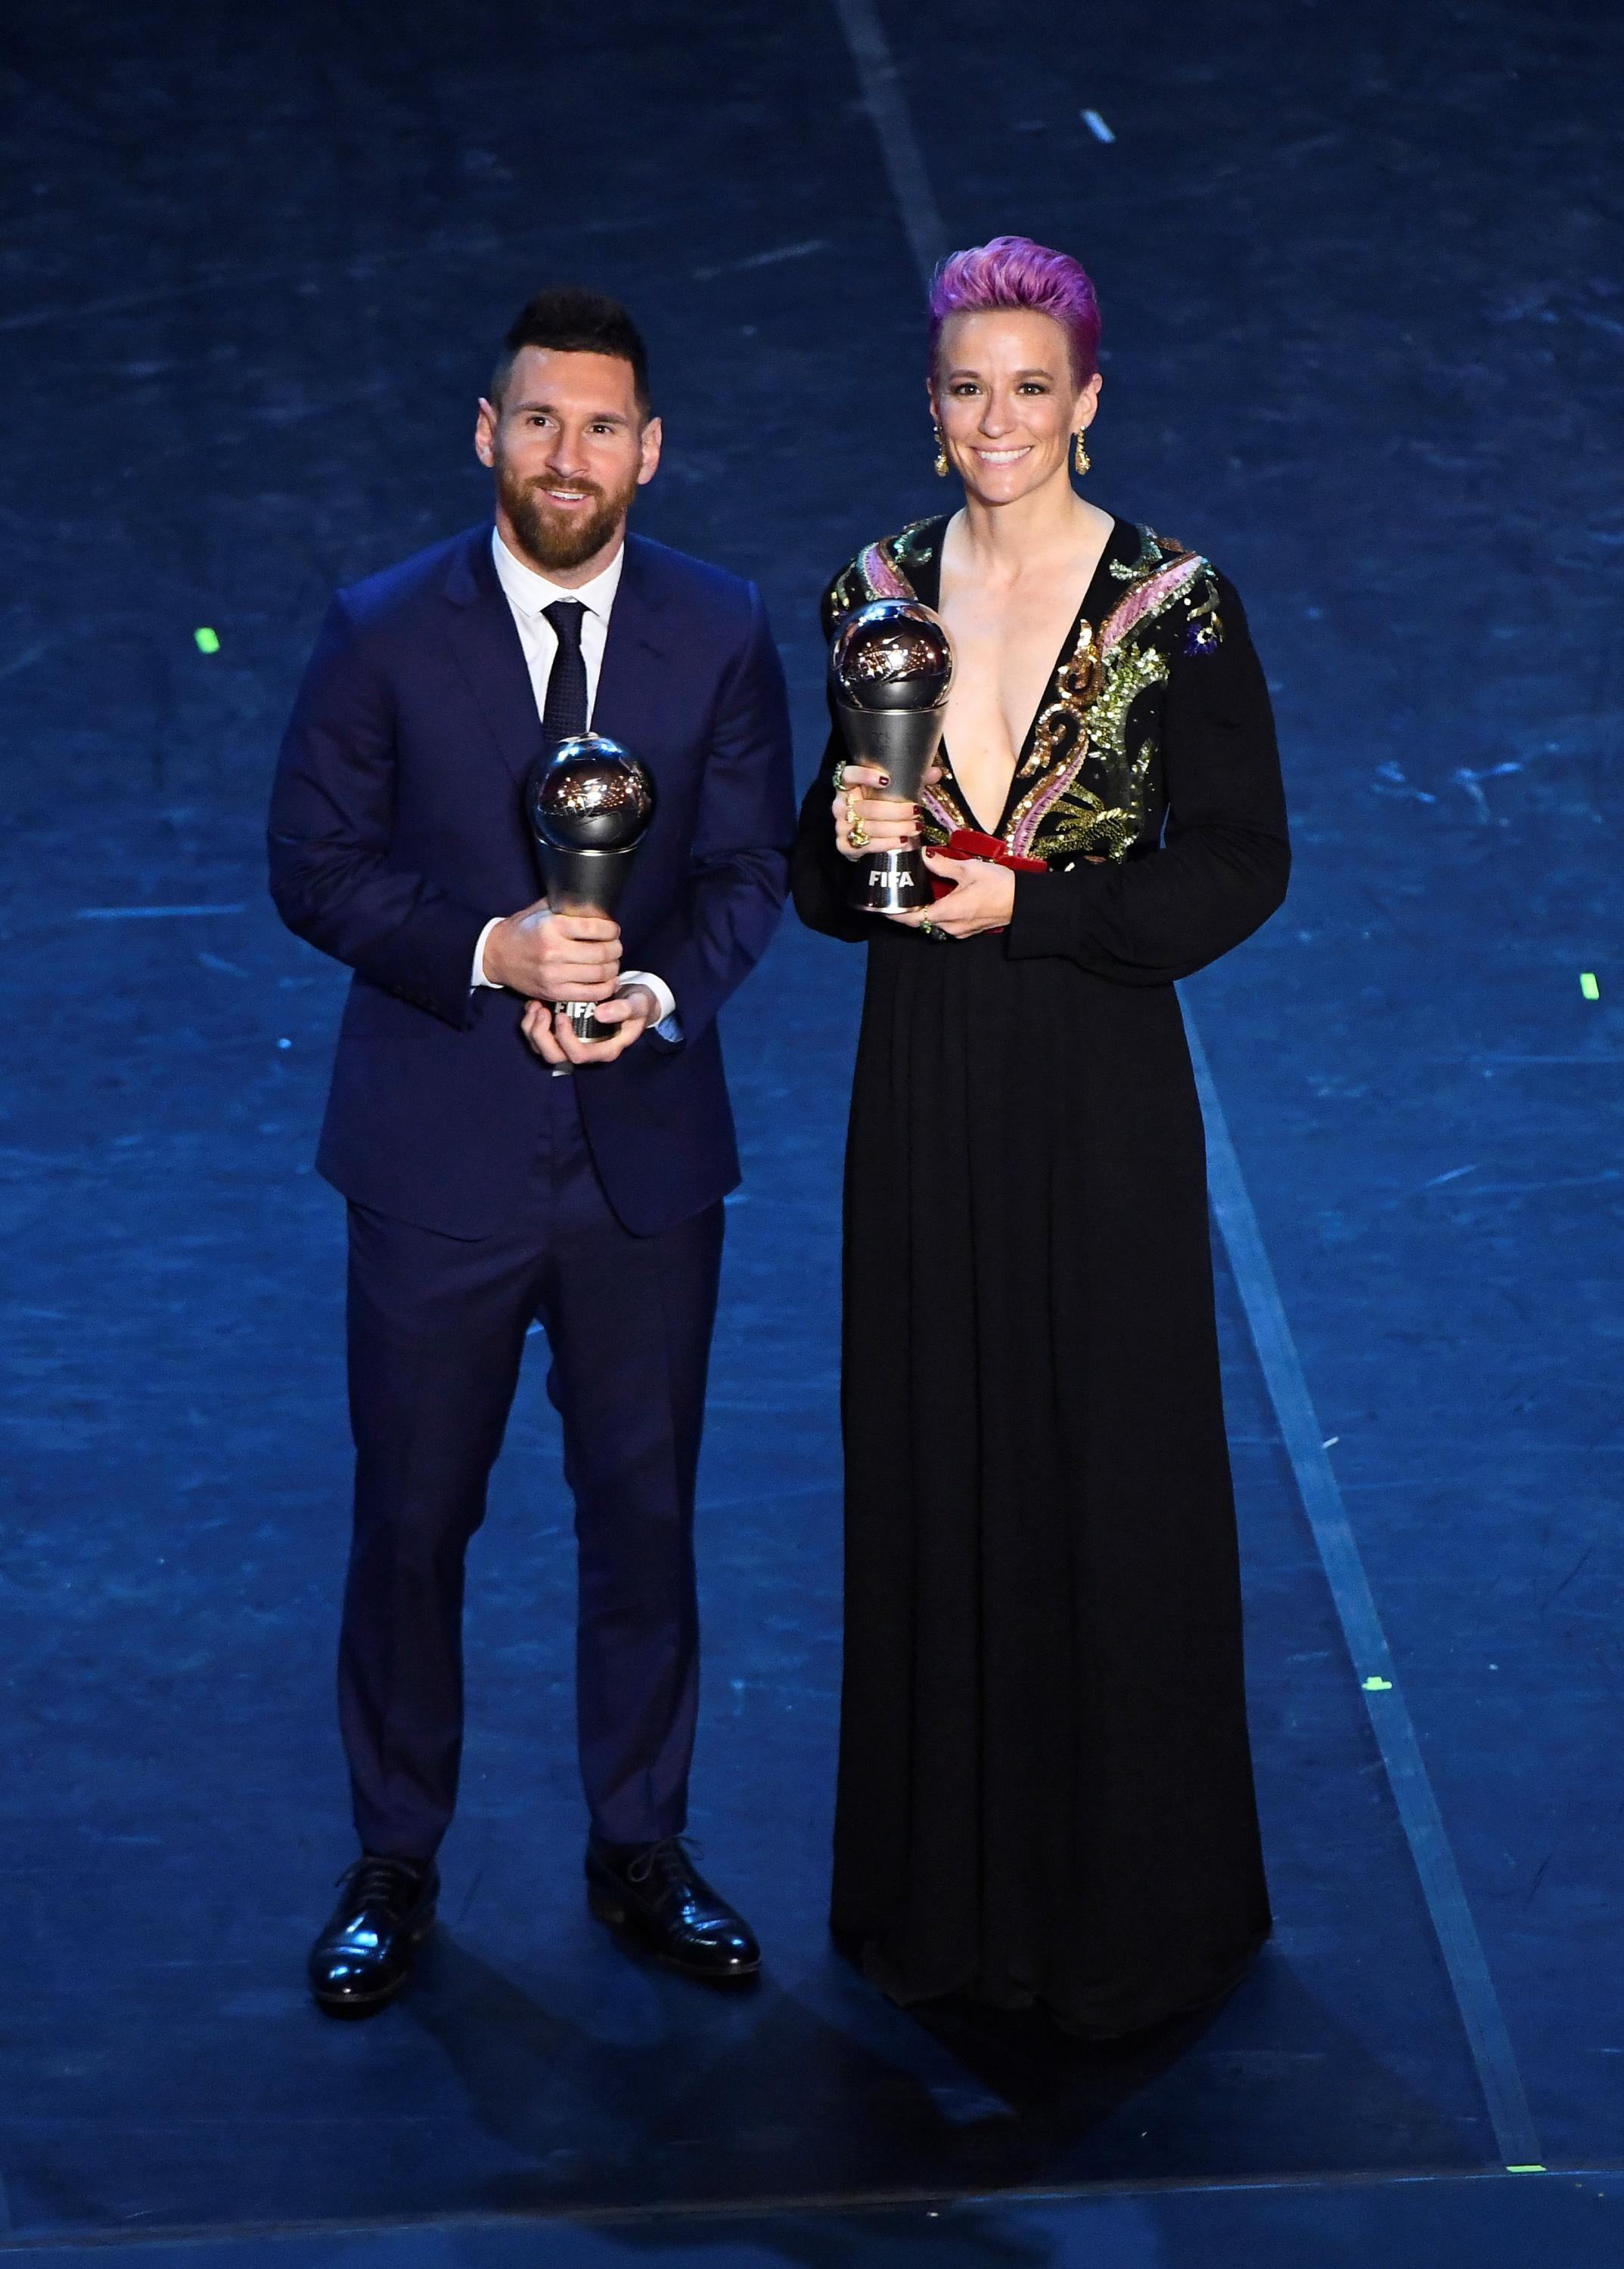 Lionel Messi and Megan Rapinoe pose with their FIFA Player of the Year awards, Milan, Italy, September 23, 2019.